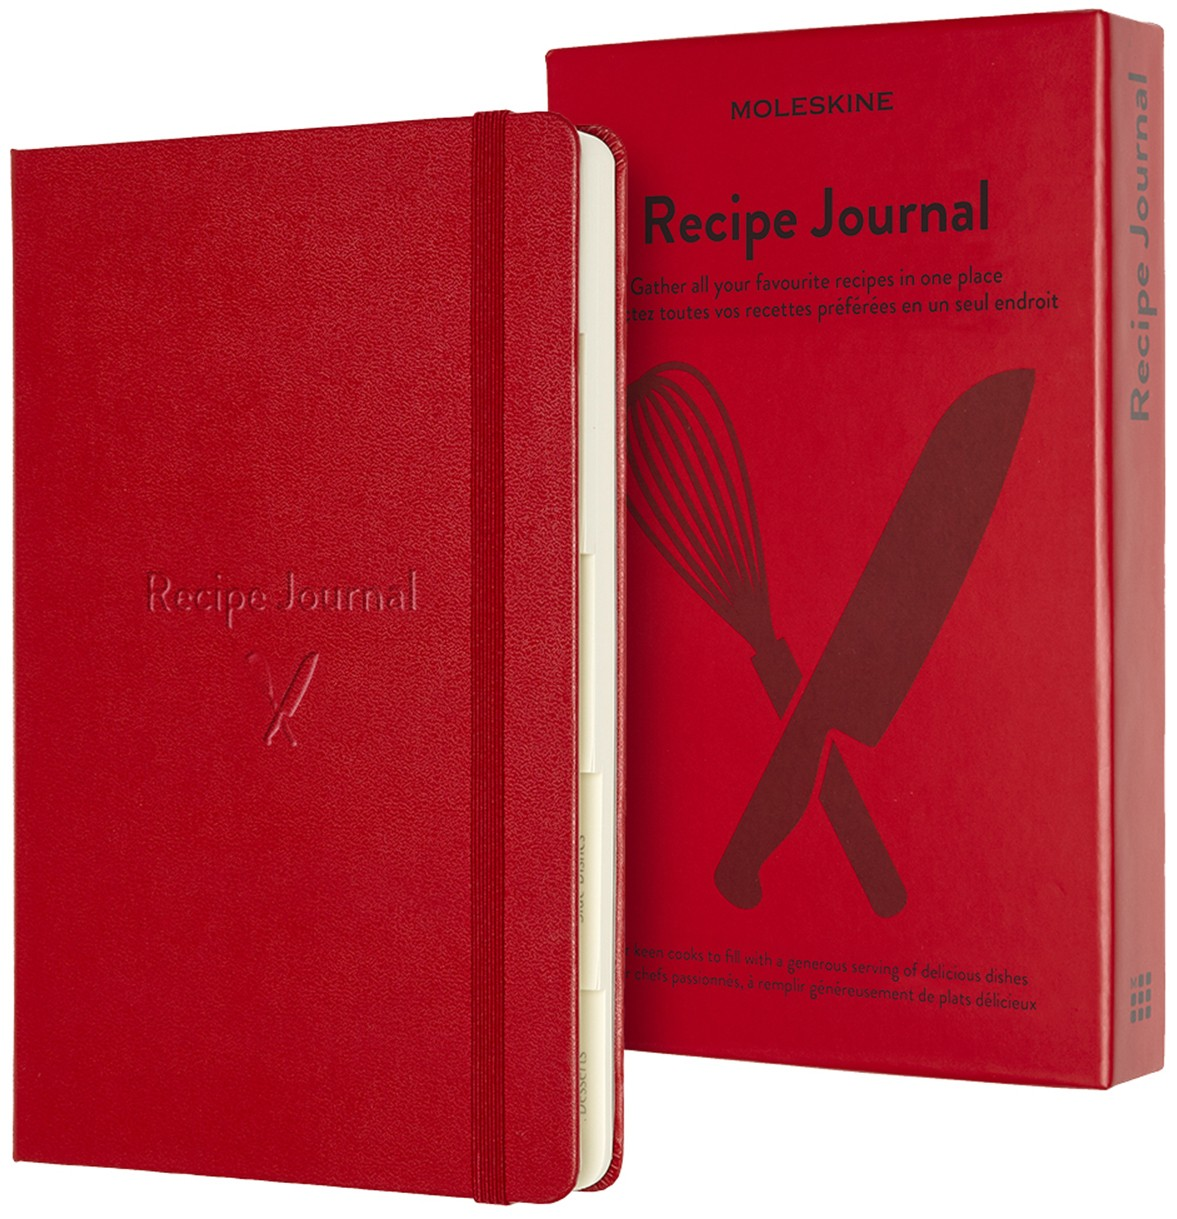 Passion Journal / Recetas